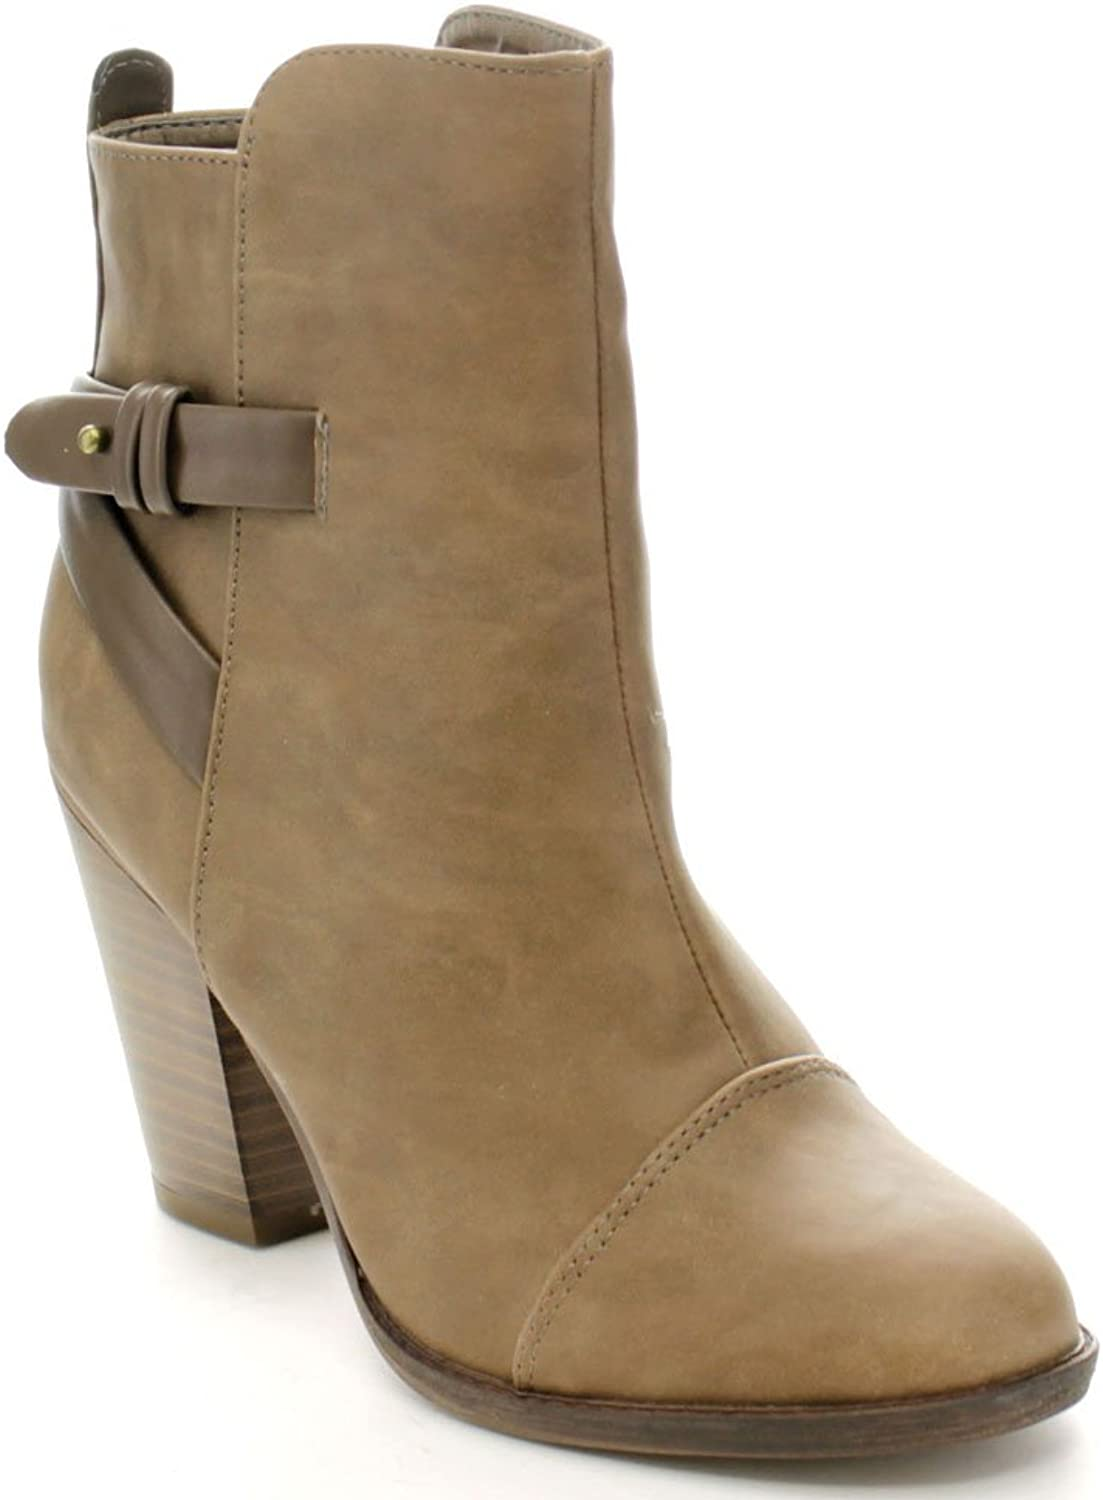 Breckelles HEATHER-32 Women's High Top Belted Chunky Stacked Heel Ankle Booties, color Beige, Size 6.5